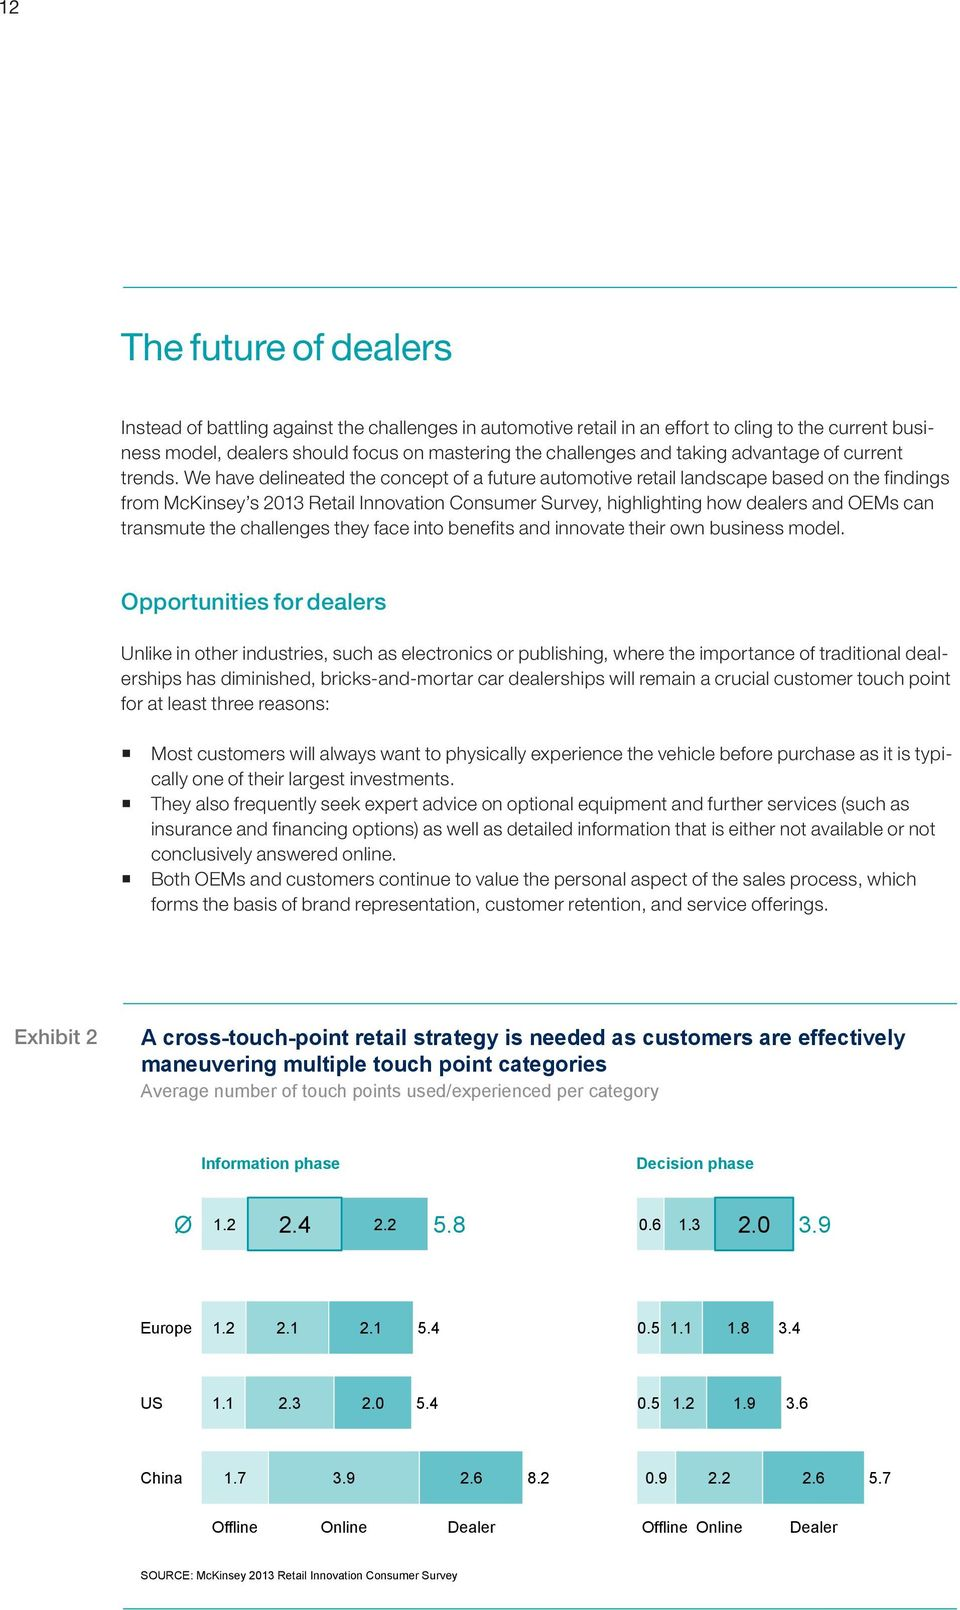 We have delineated the concept of a future automotive retail landscape based on the findings from McKinsey s 2013 Retail Innovation Consumer Survey, highlighting how dealers and OEMs can transmute